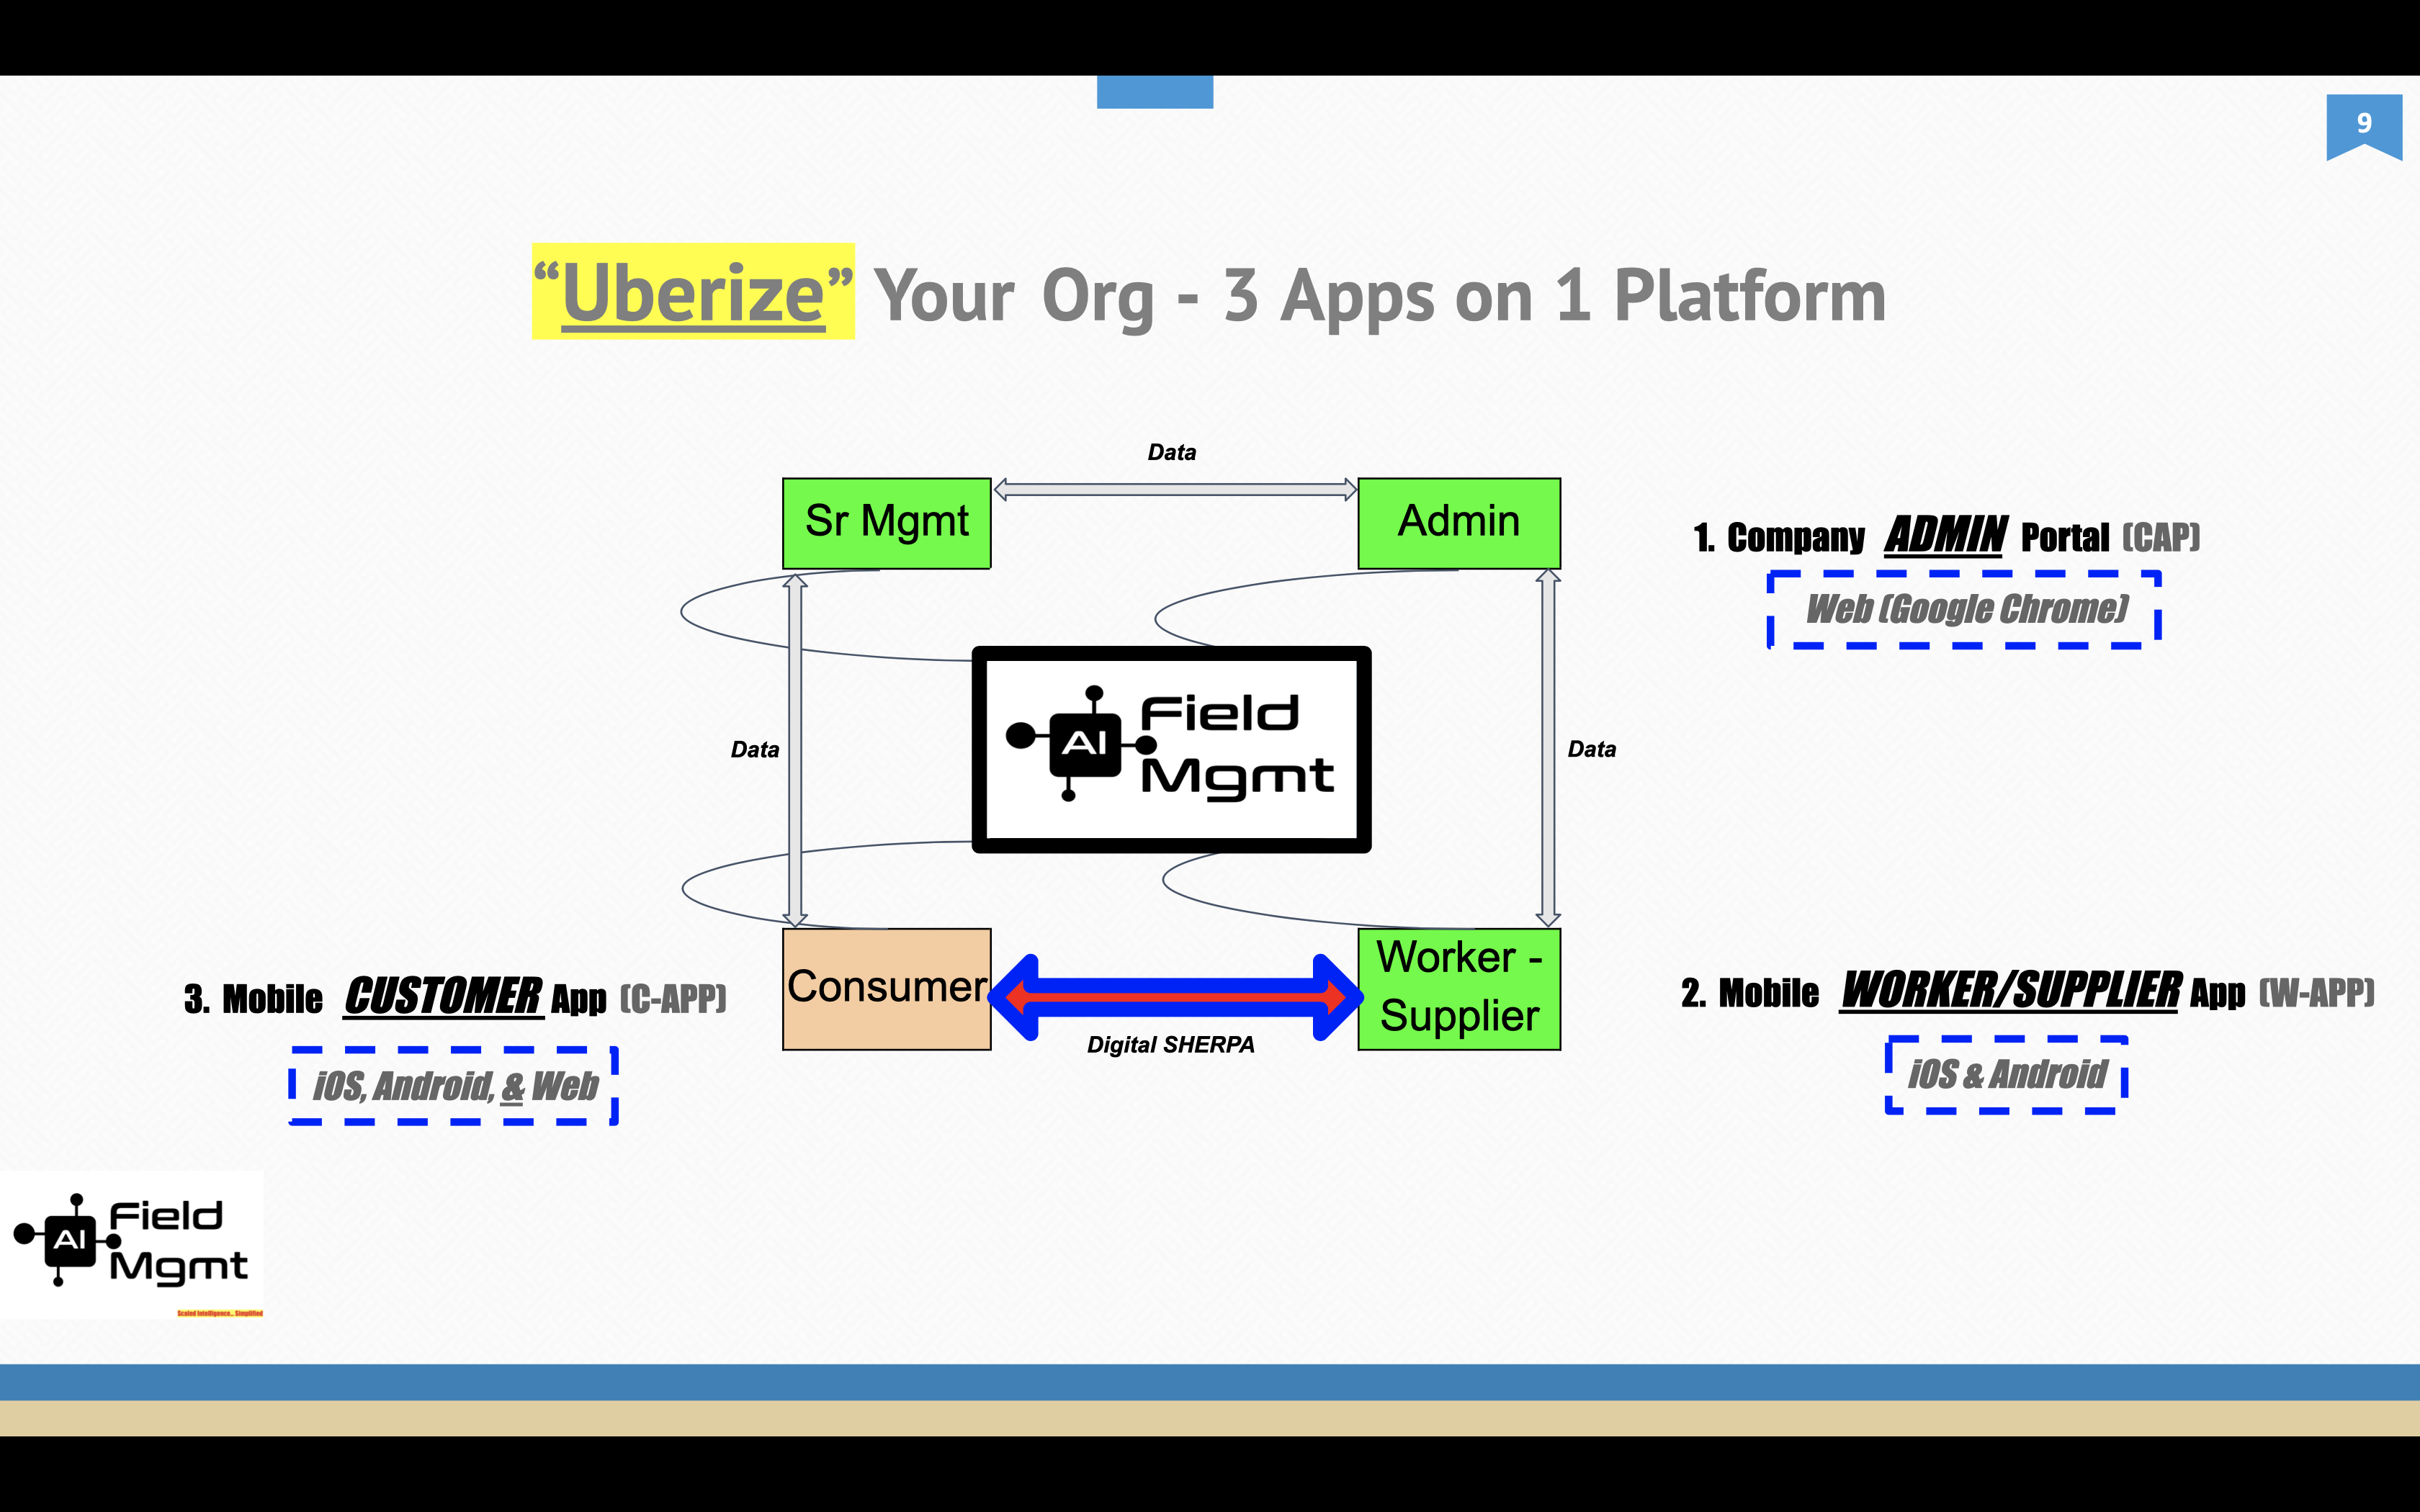 """AI Field Management screenshot: """"UBERize"""" your Operations:  YOUR Customers can make real-time requests for ANY Product or Service and AI-FM will direct it to the best suited field worker instantly.  AI-FM's Trademarked Algorithm ensures accuracy, speed and customizability"""